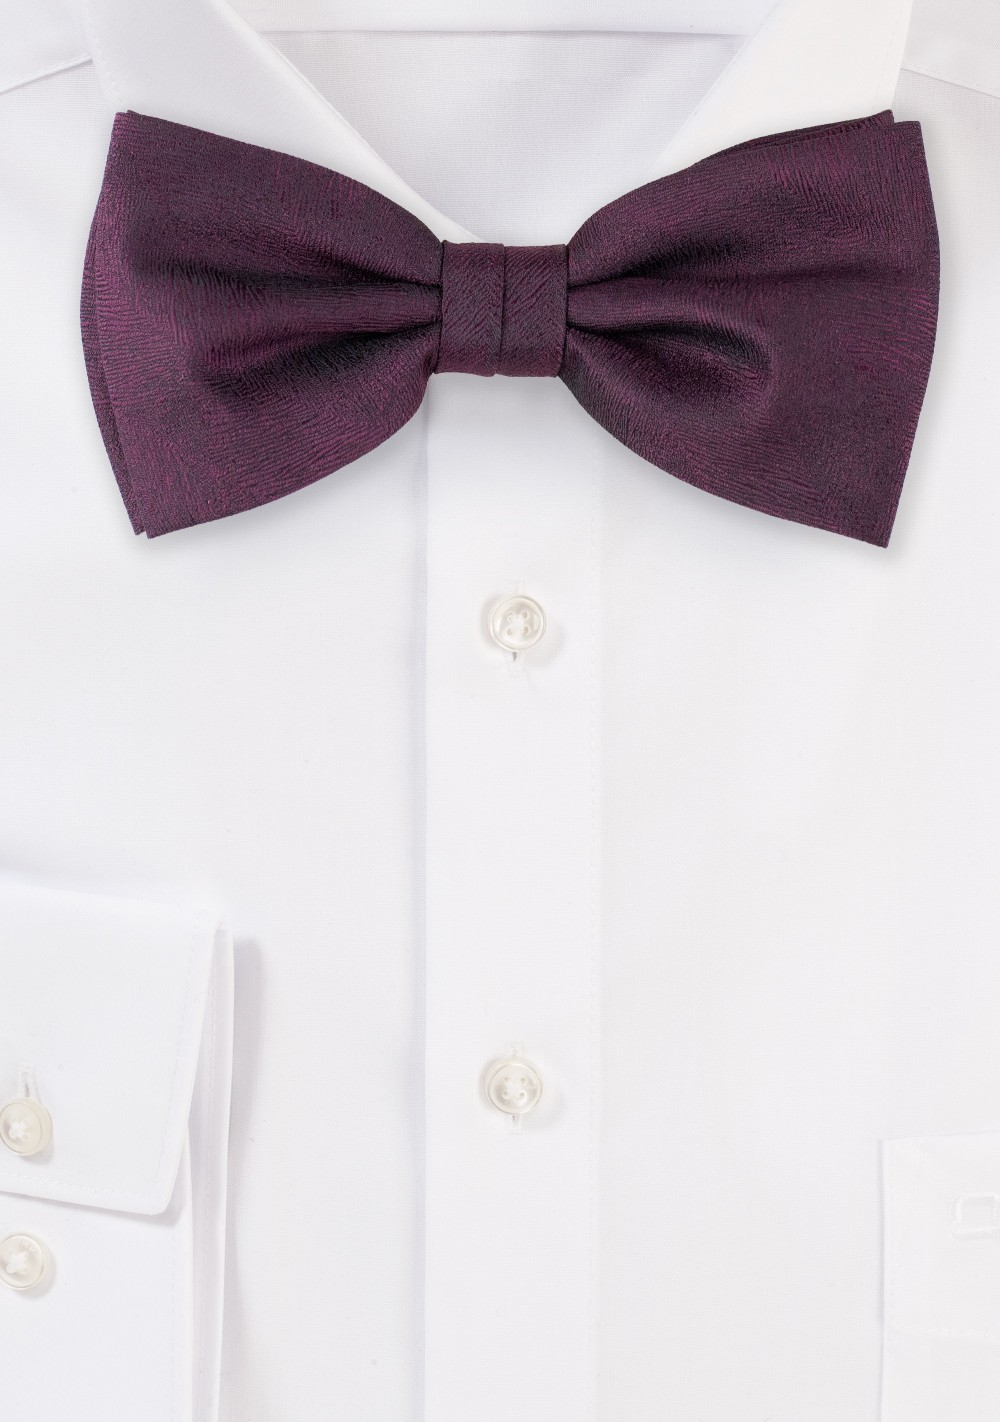 Wood Grain Weave Bow Tie in Wine